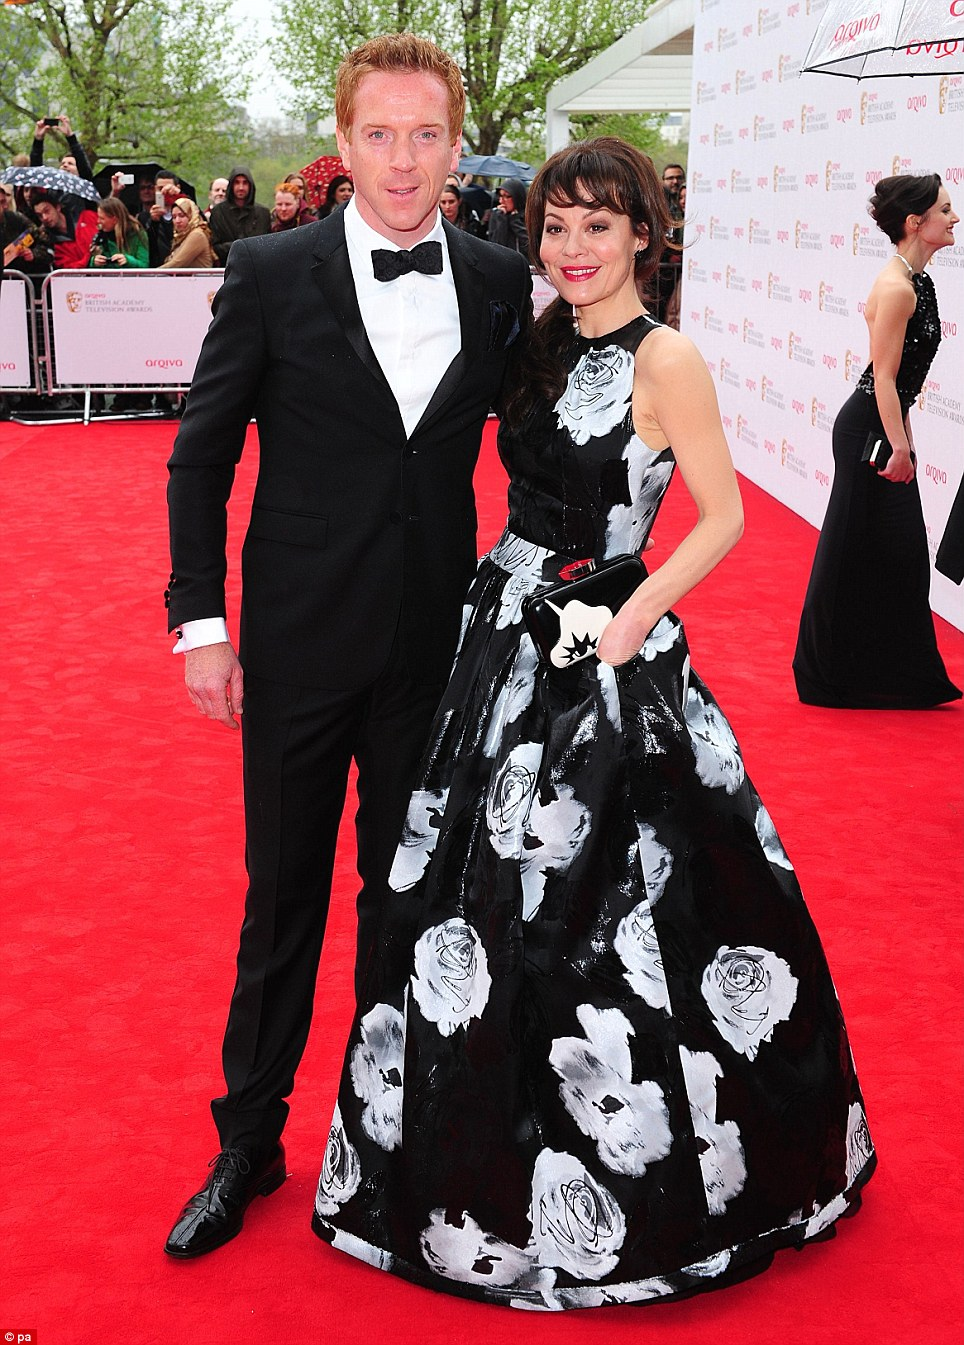 A beautiful couple: Helen McCrory and Damien Lewis were on the red carpet together adding further glamour to the illustrious event